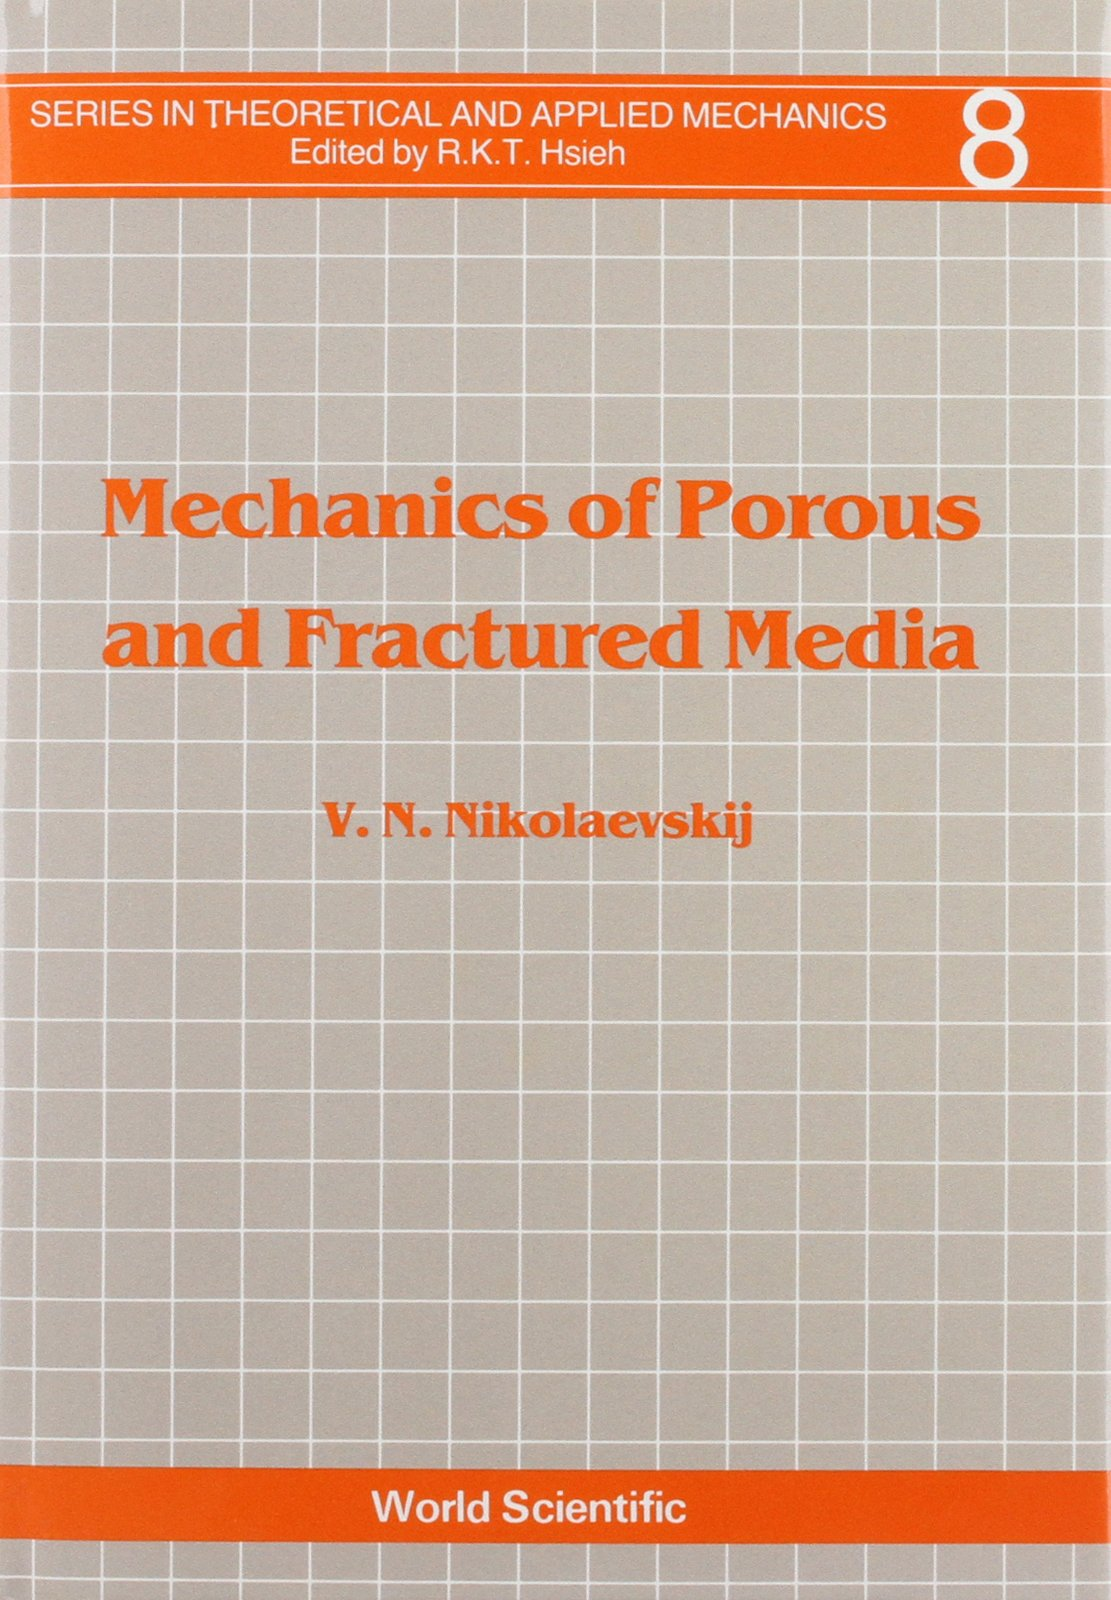 Mechanics of Porous and Fractured Media (SERIES IN THEORETICAL AND APPLIED MECHANICS) (v. 8)